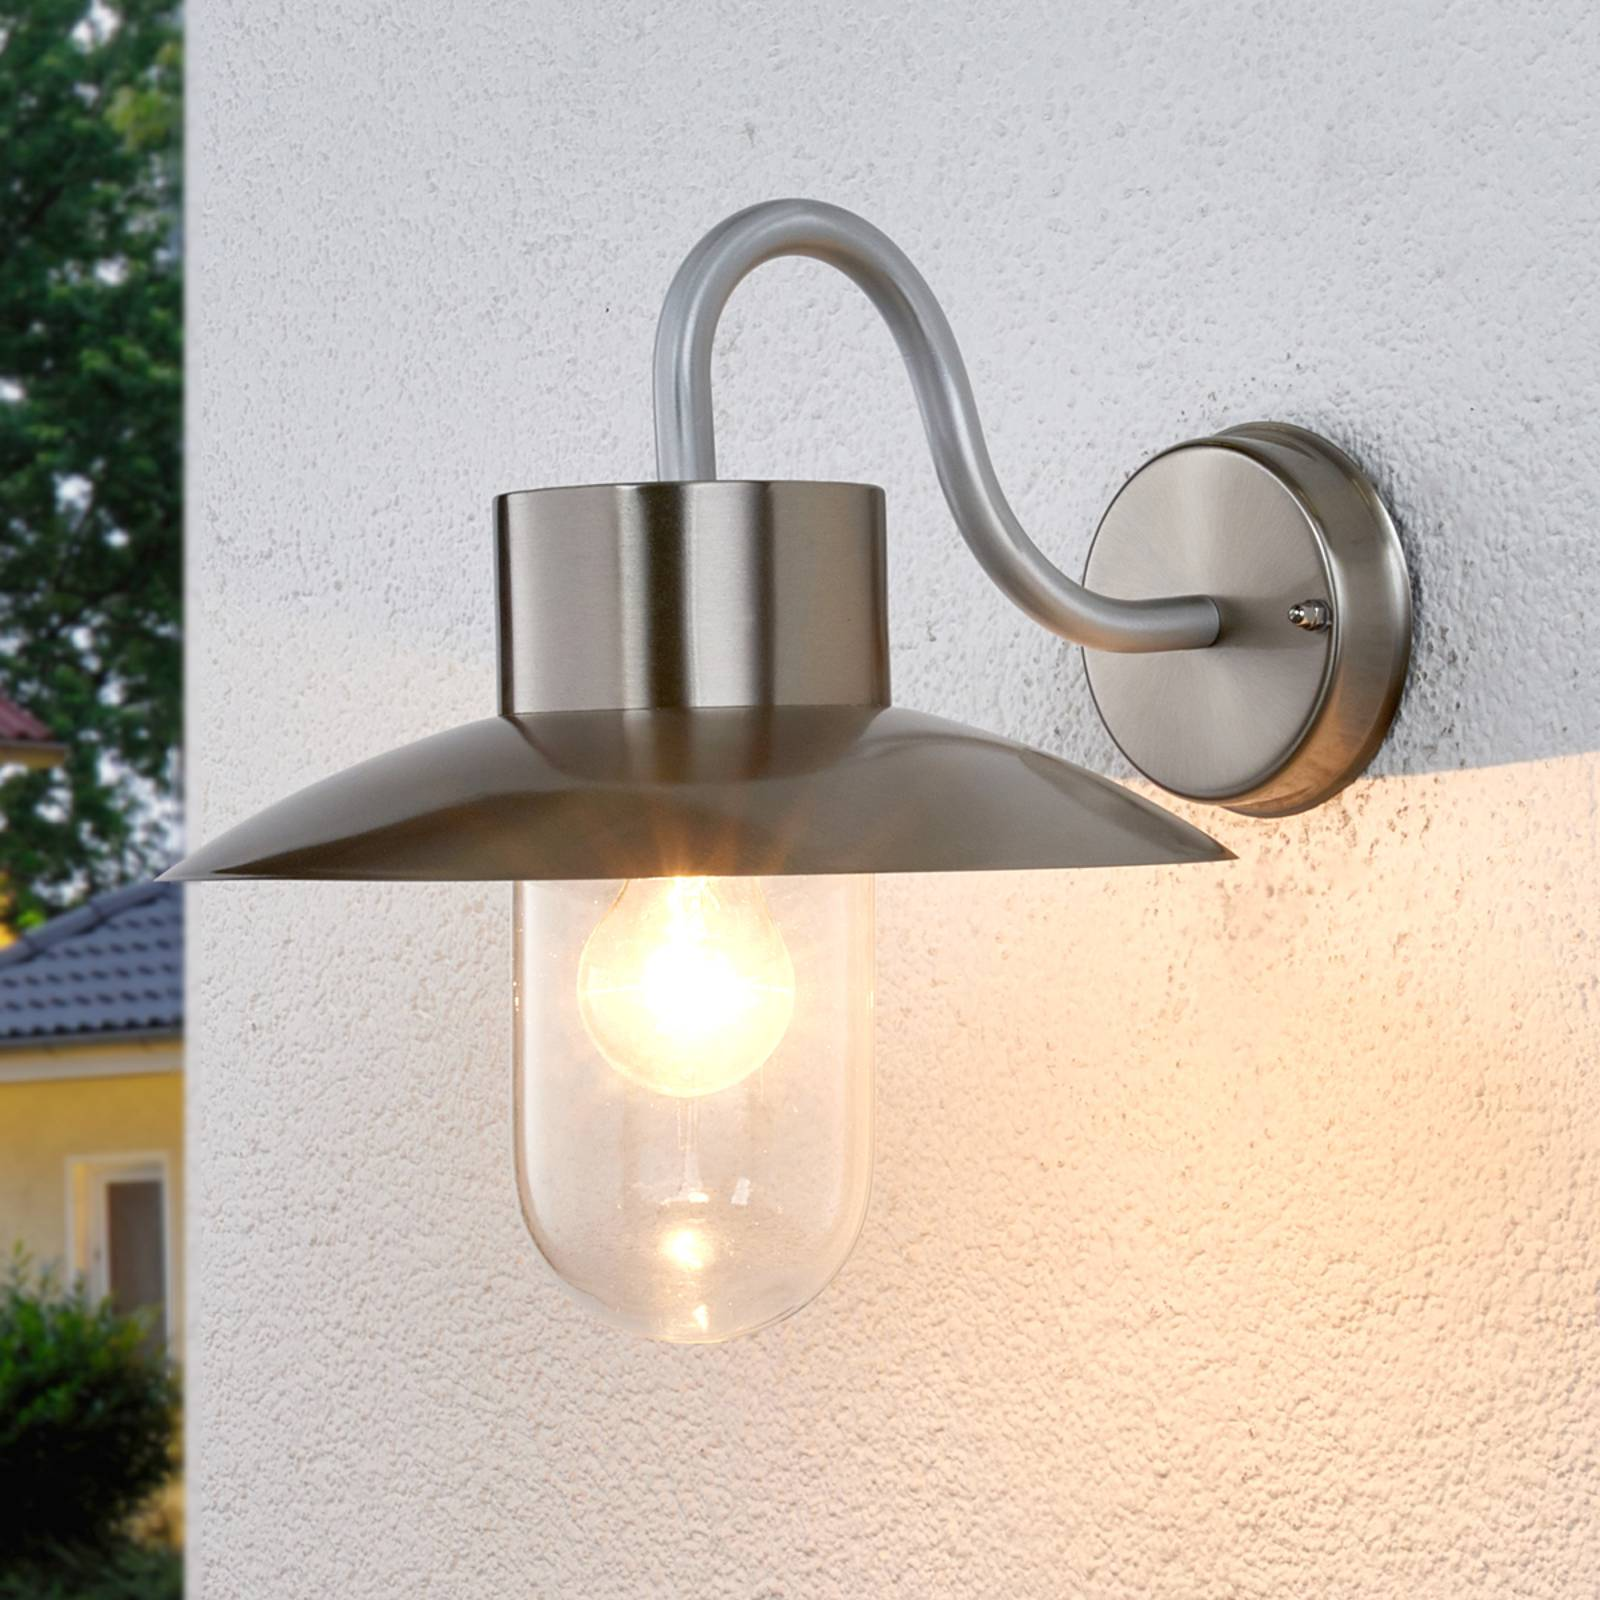 Nordic-looking outdoor wall light Leenke from Lampenwelt.com